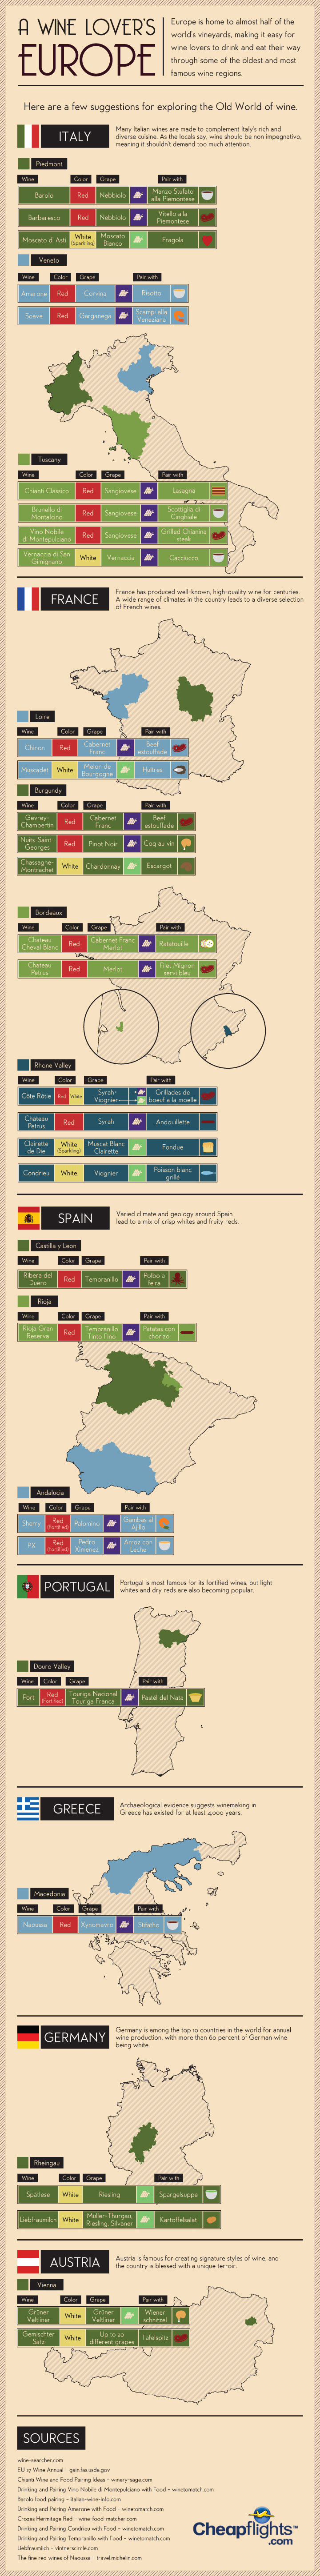 European Wine Guide-Infographic